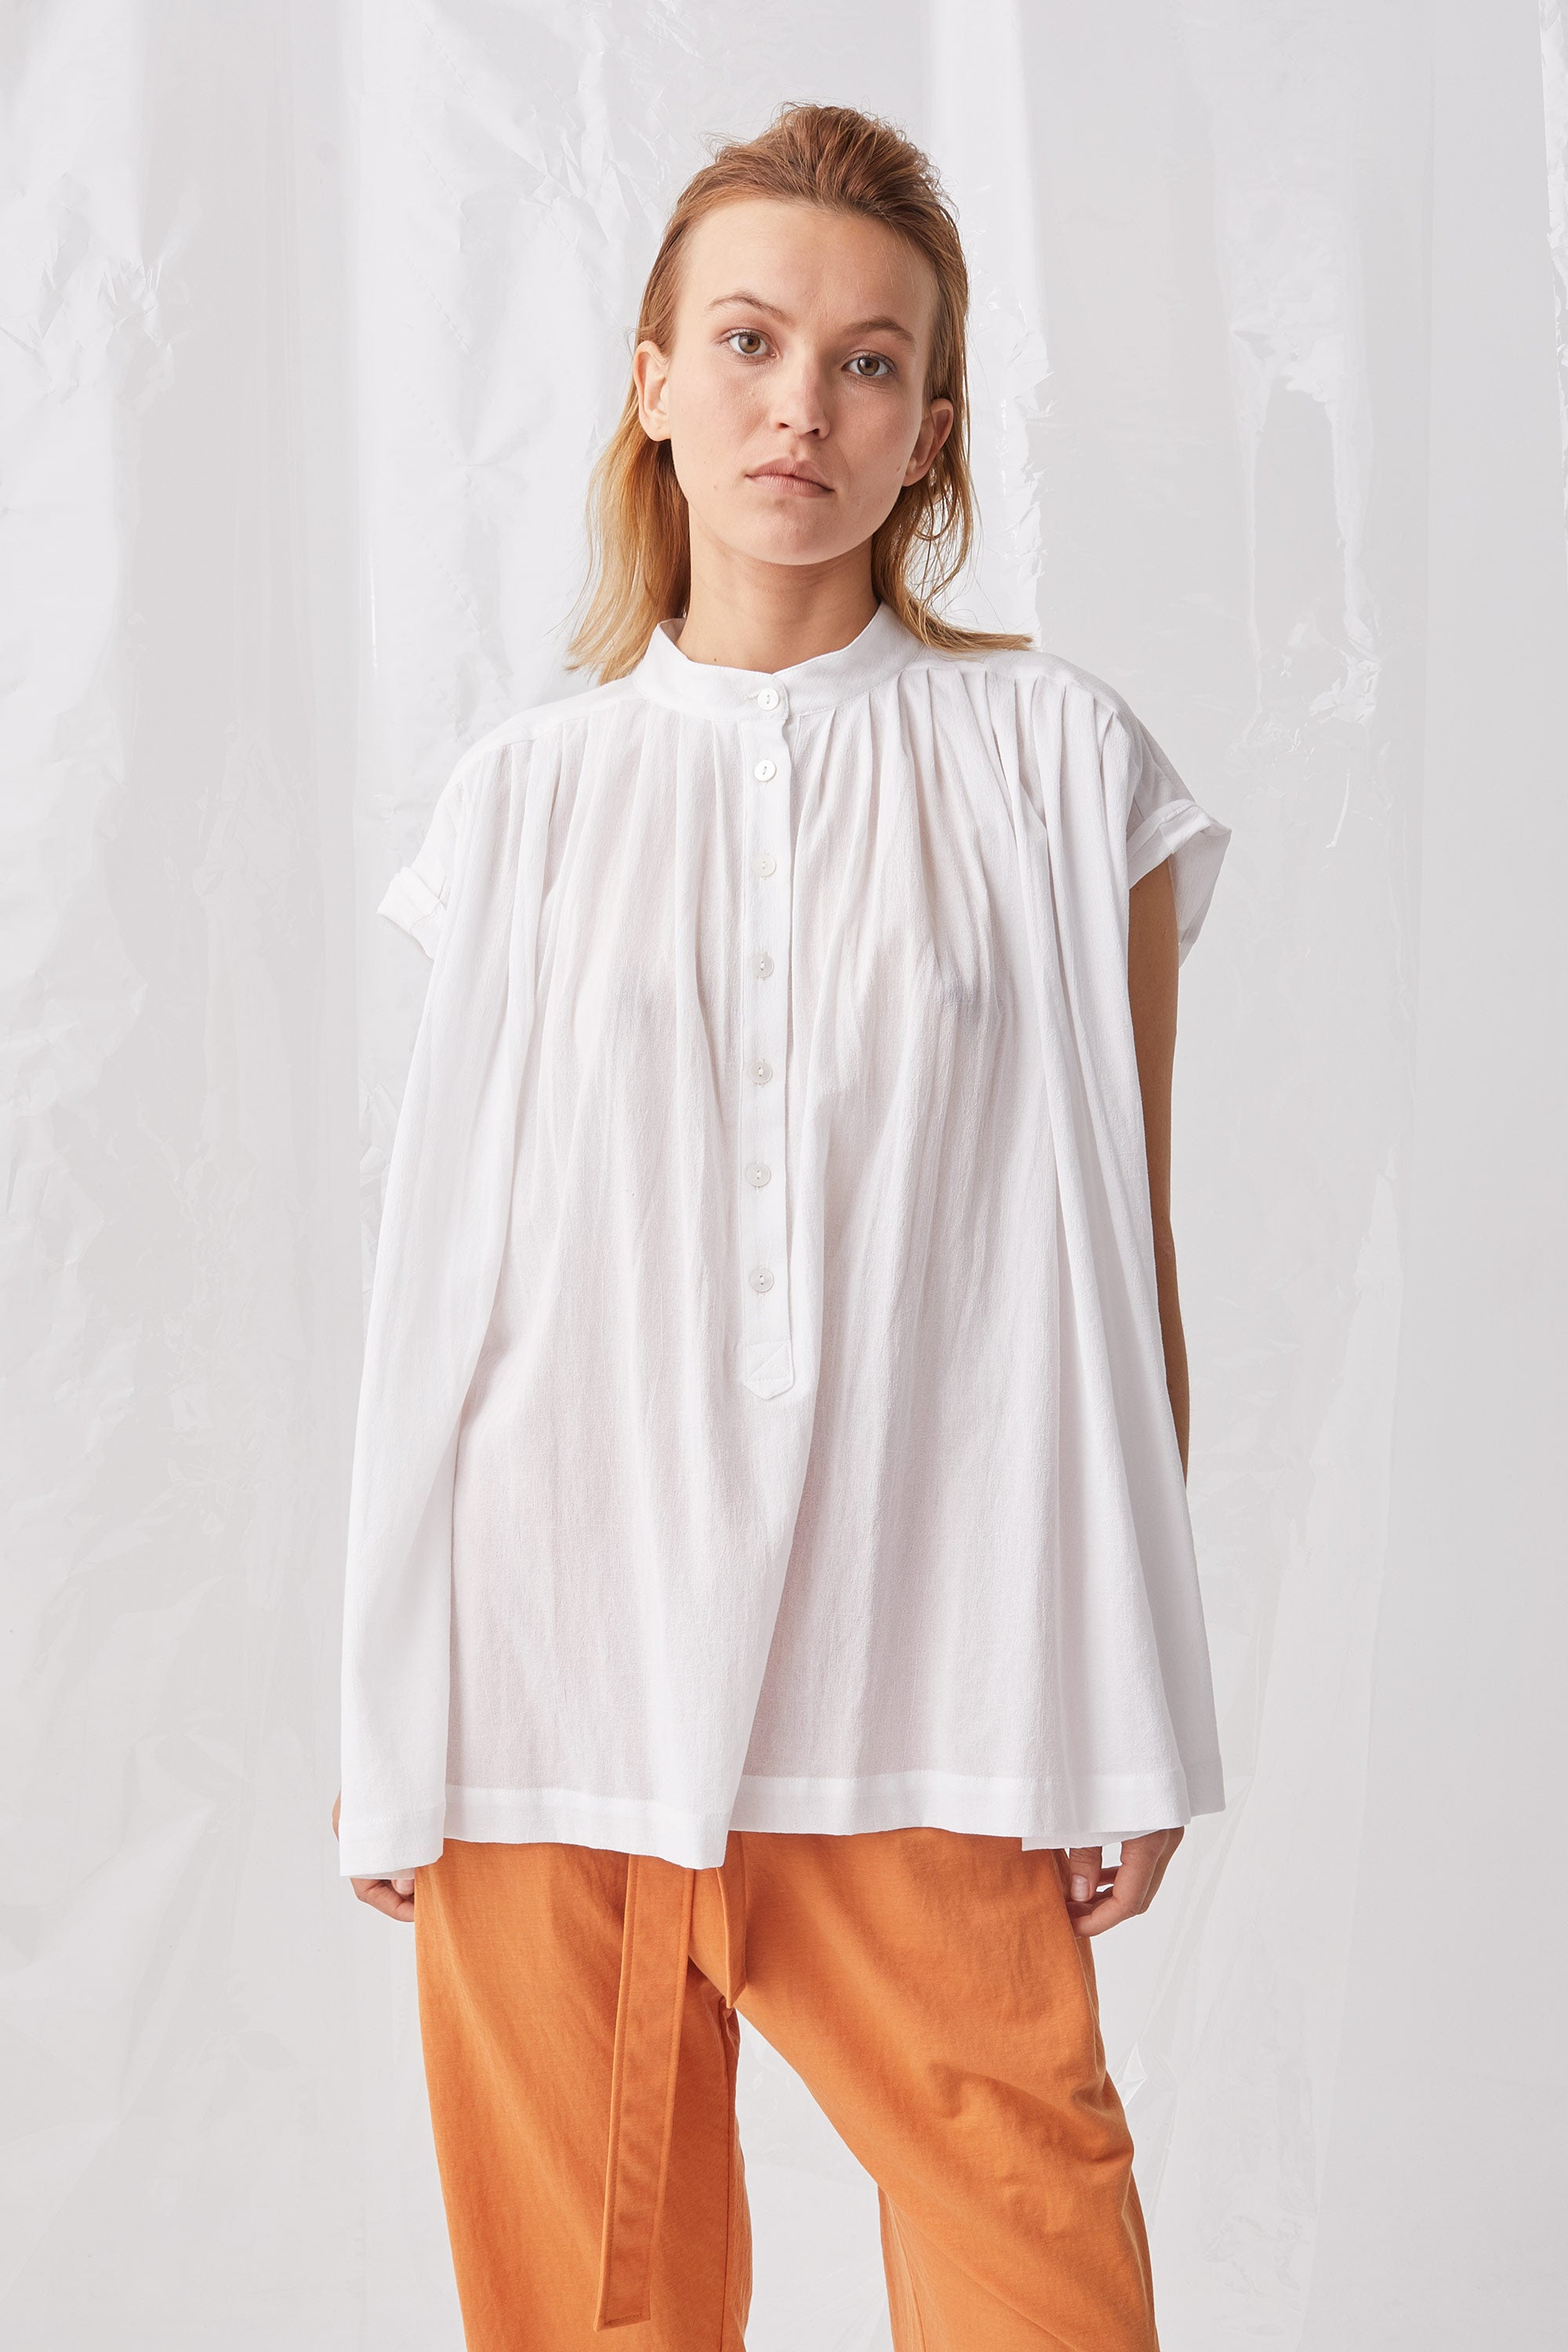 Ricochet NZ Fashion Designer Clothing Boutique SS18 Akashi Top White Cotton Crepe Made in NZ